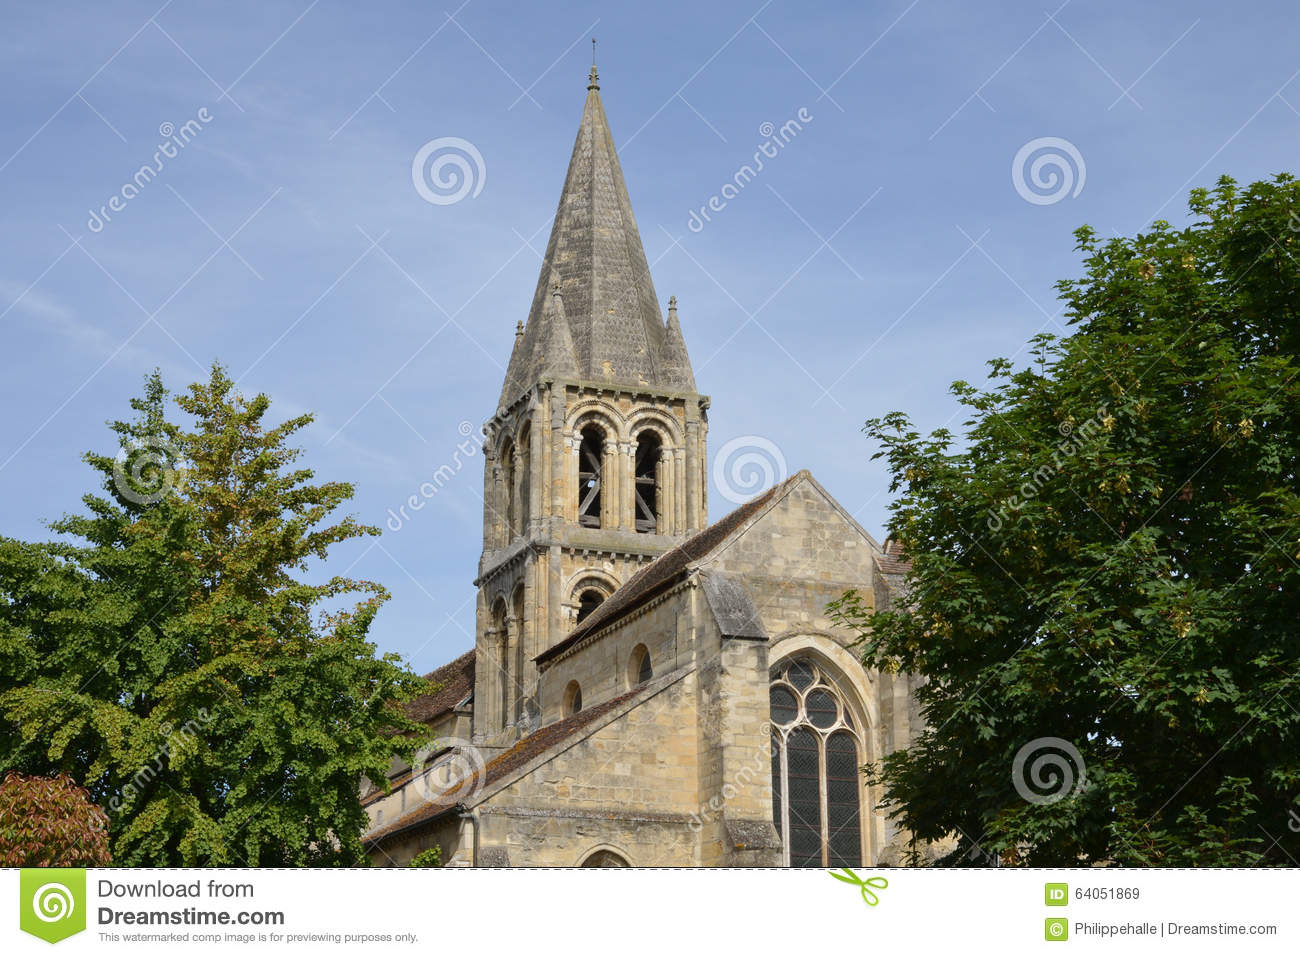 france the picturesque church of jouy le moutier stock photo image 64051869. Black Bedroom Furniture Sets. Home Design Ideas